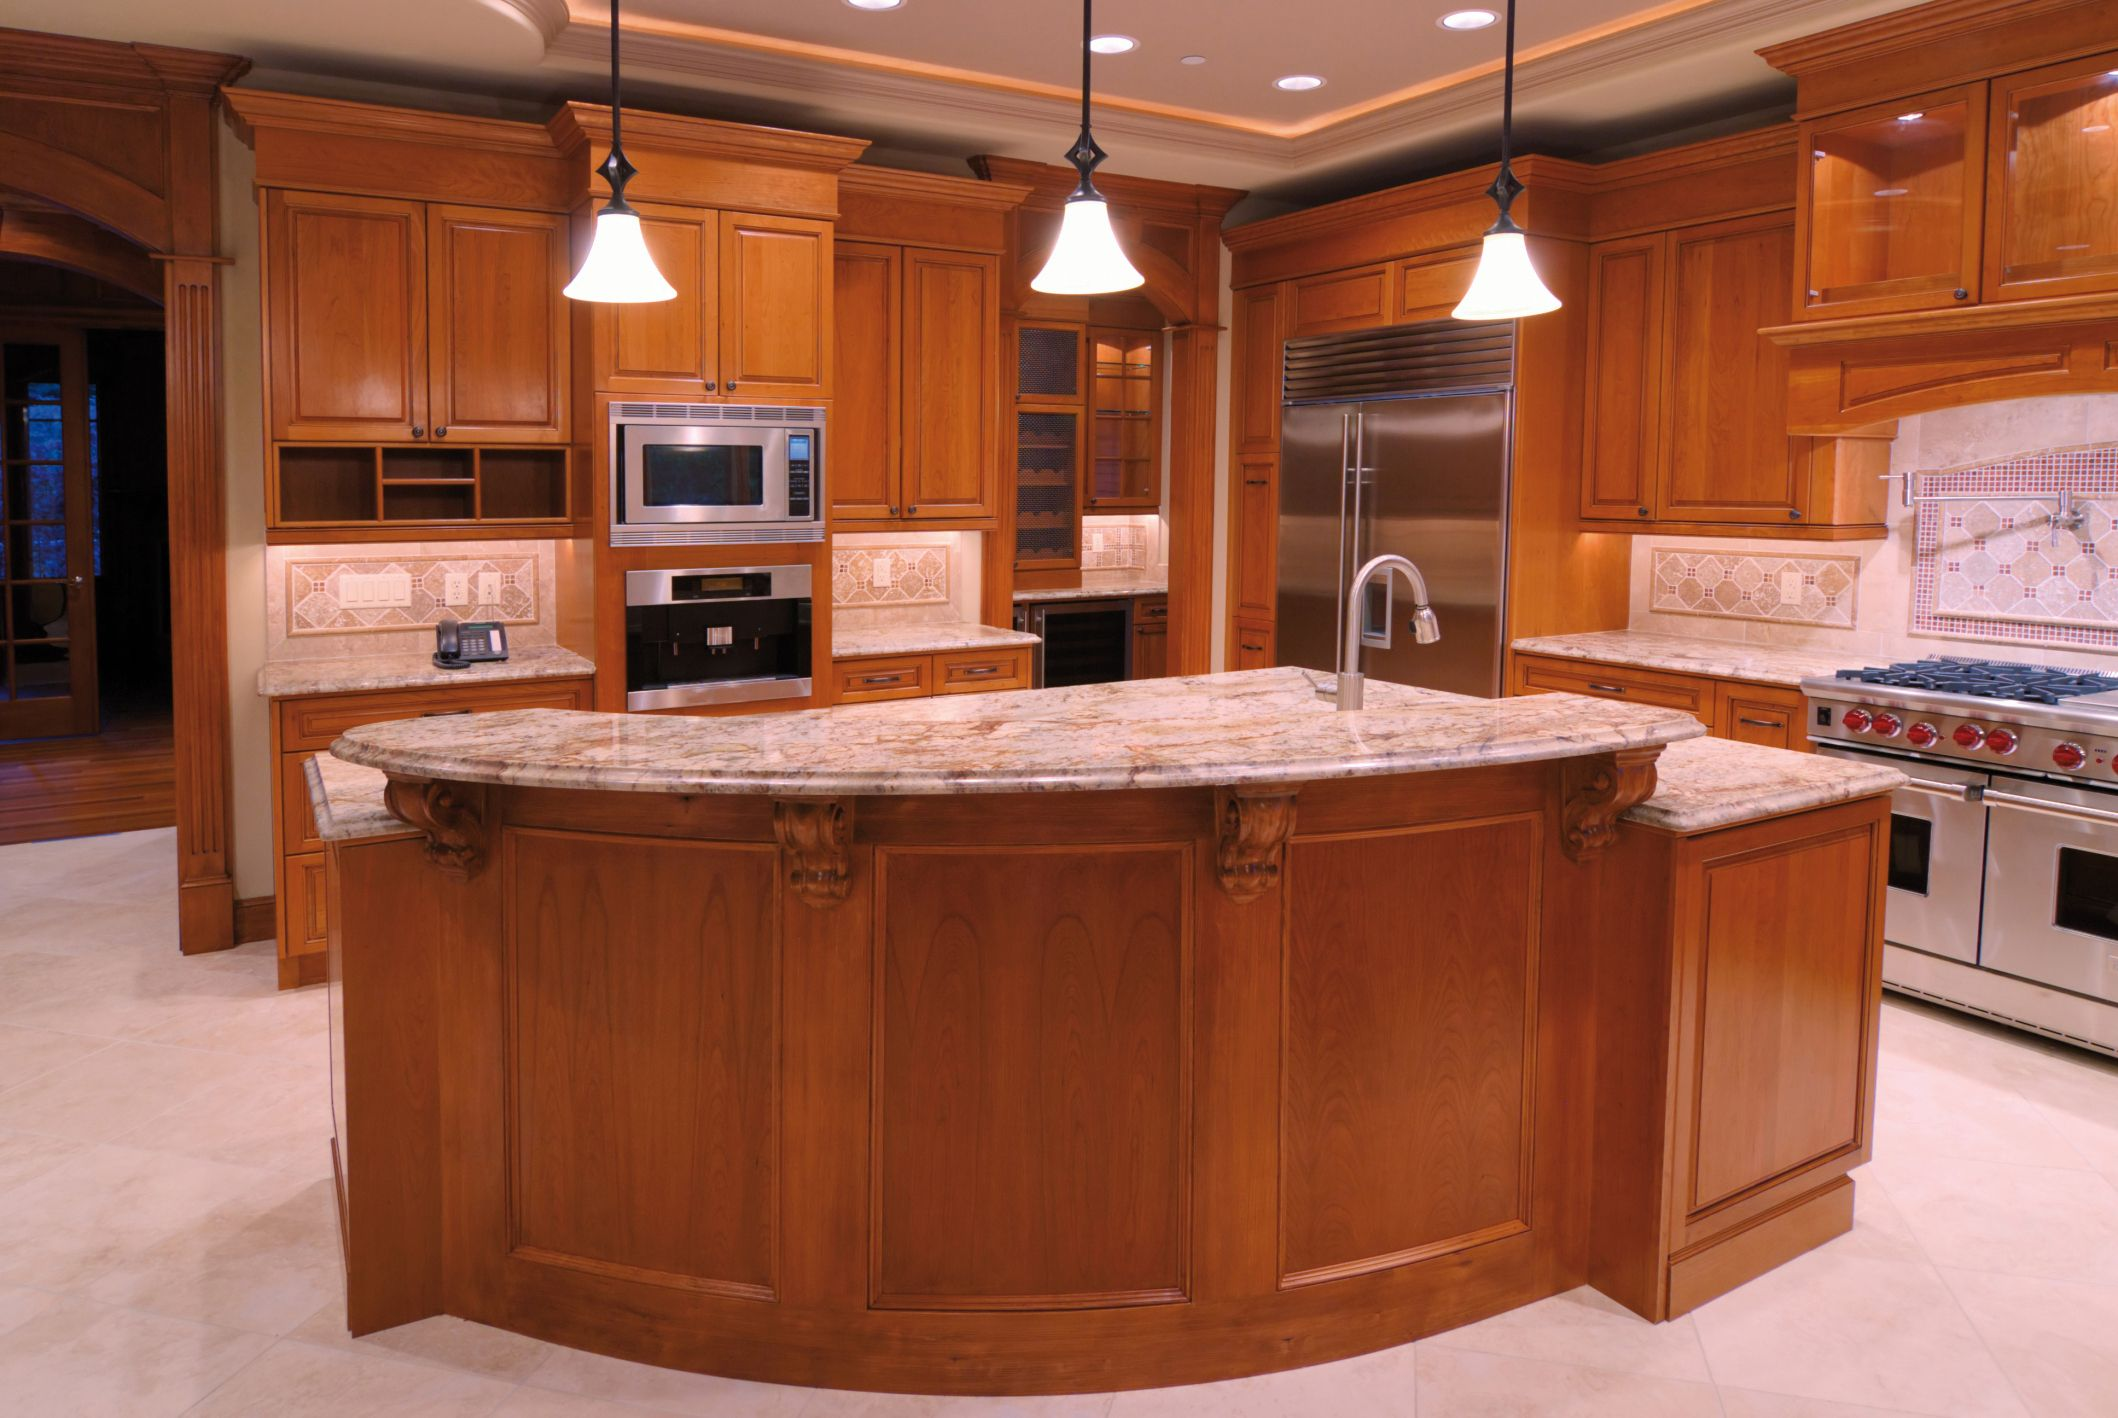 The Best Kitchens In World Invite Us Roanoke Valley Home Magazine Kitchen Remodel Pictures Cool